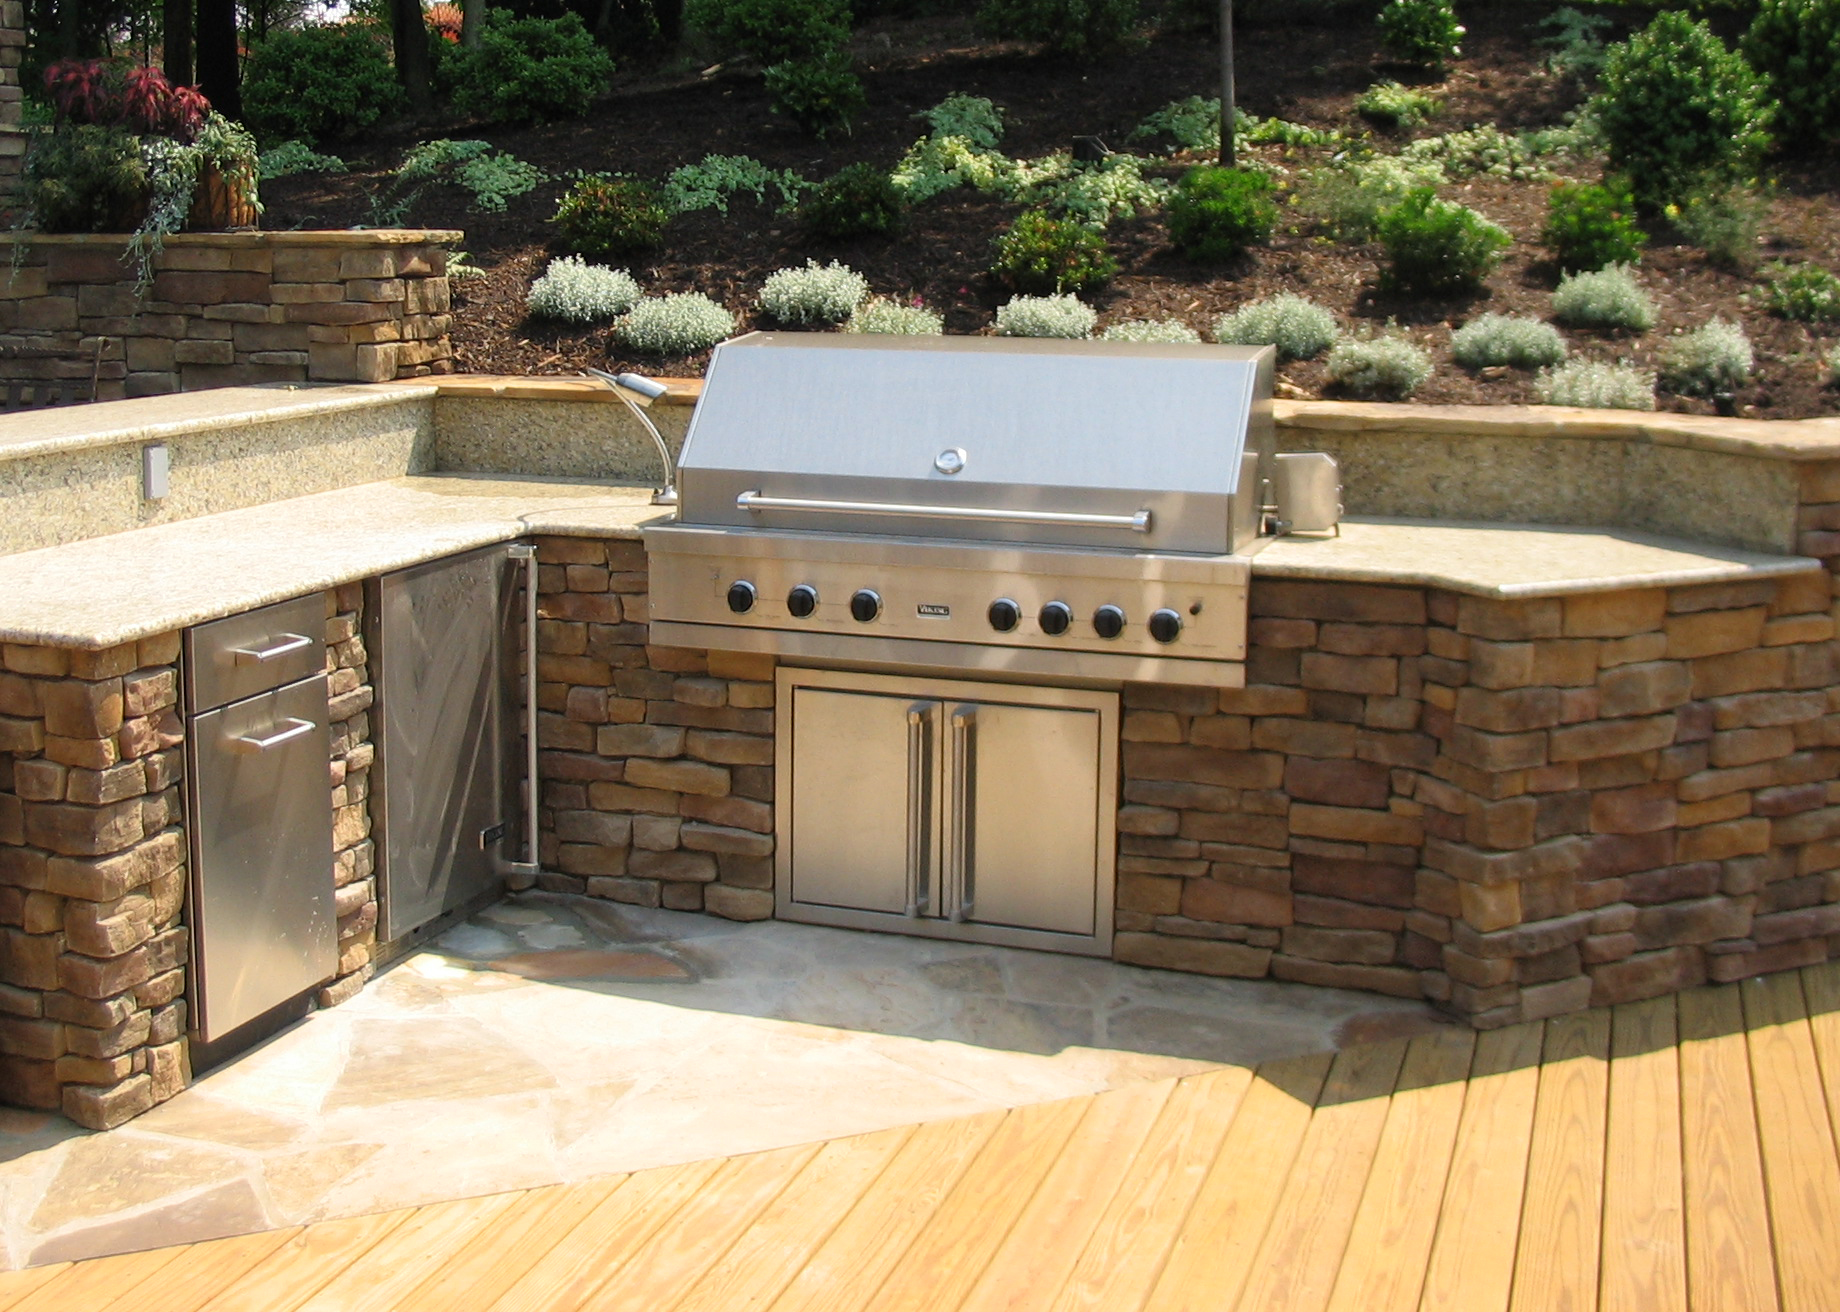 Building An Outdoor Kitchen Designing An Outdoor Kitchen Revolutionary Gardens